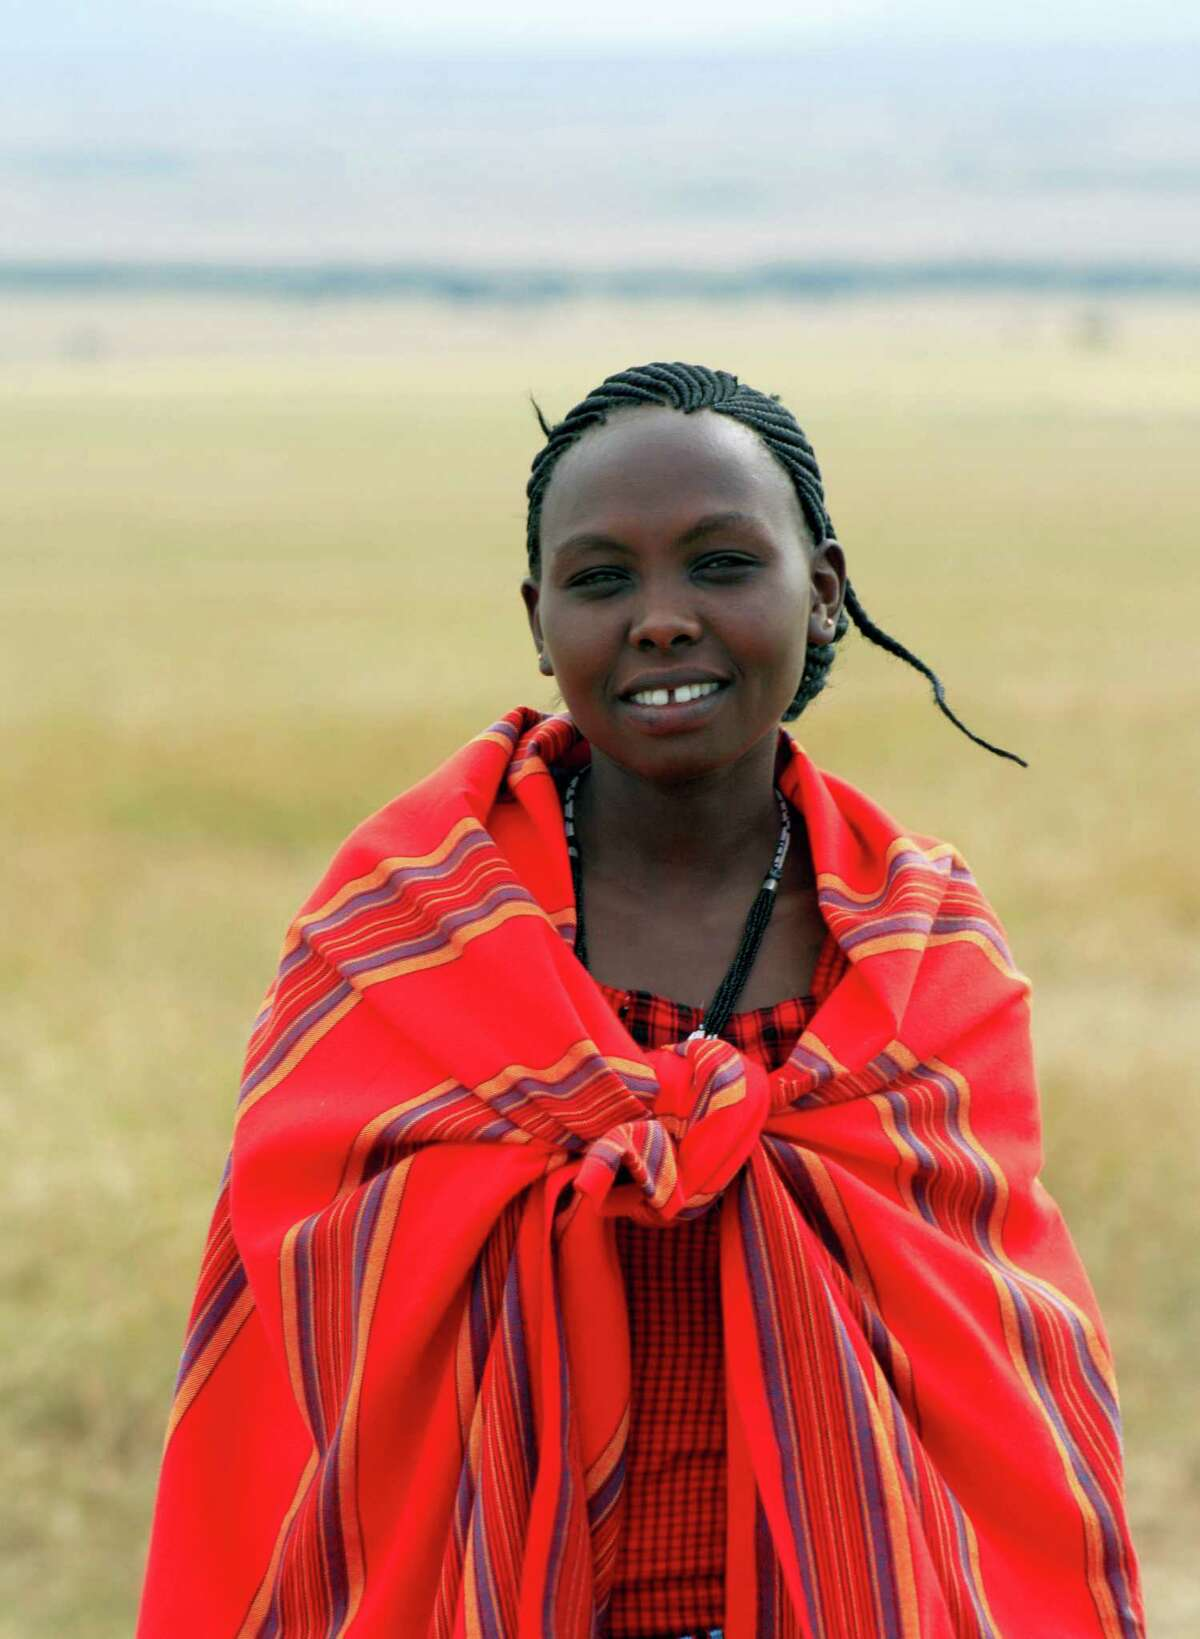 This March 7, 2016 photo shows Judy Koya, a member of Kenya's Maasai tribe on a training mission in Kenya's Maasai Mara region. The Maasai group was participating in a program to brush up on their skills as safari guides. The program also allows tourists to learn alongside them so that the visitors are not just riding along for photo opportunities, but are instead actively learning to tune into the sights and sounds of the natural world. (Charmaine Noronha via AP)